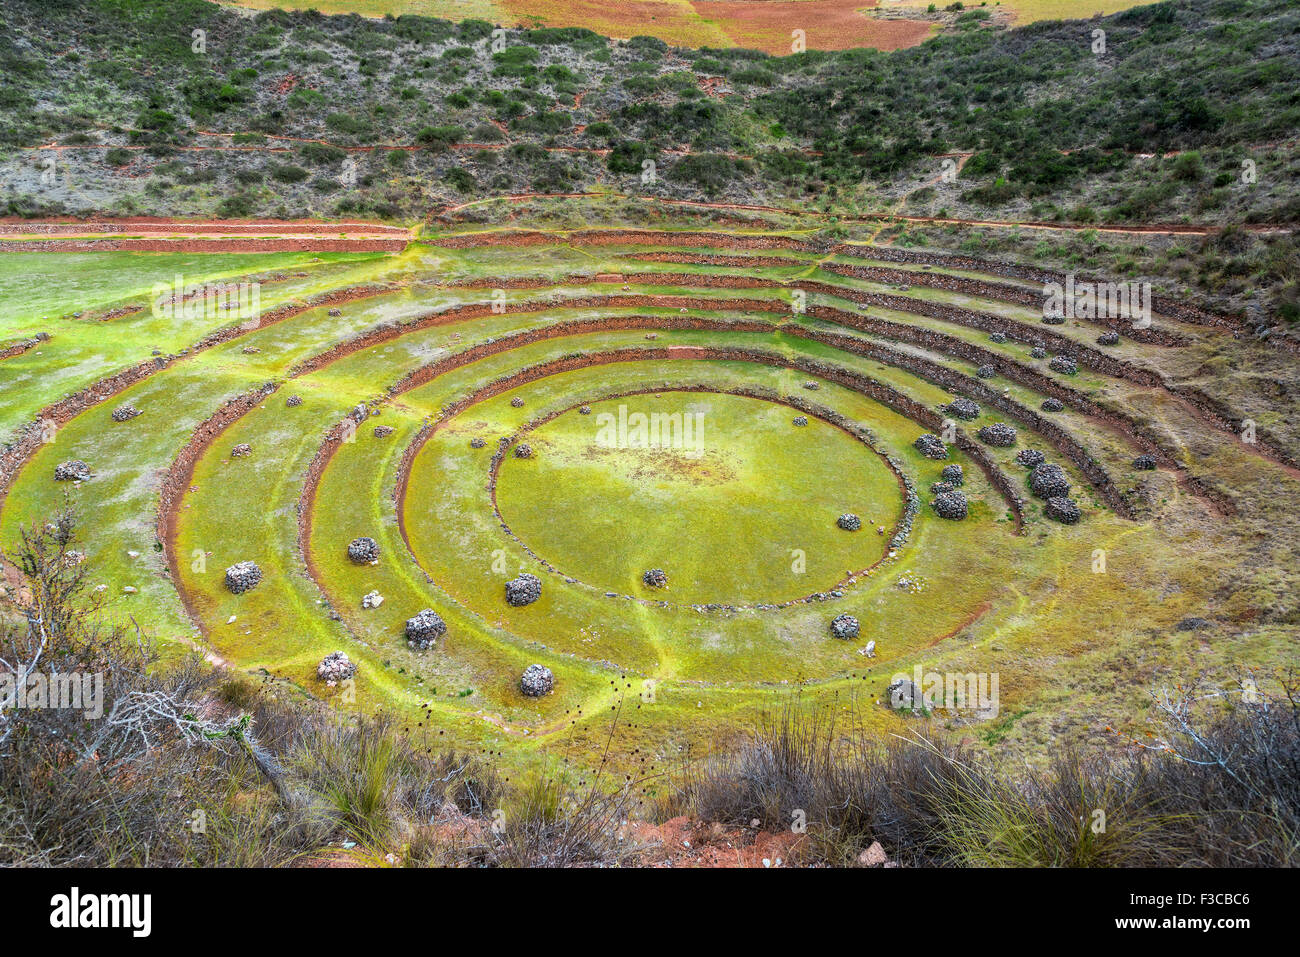 Concentric circles of the Incan ruins of Moray near Cuzco, Peru - Stock Image